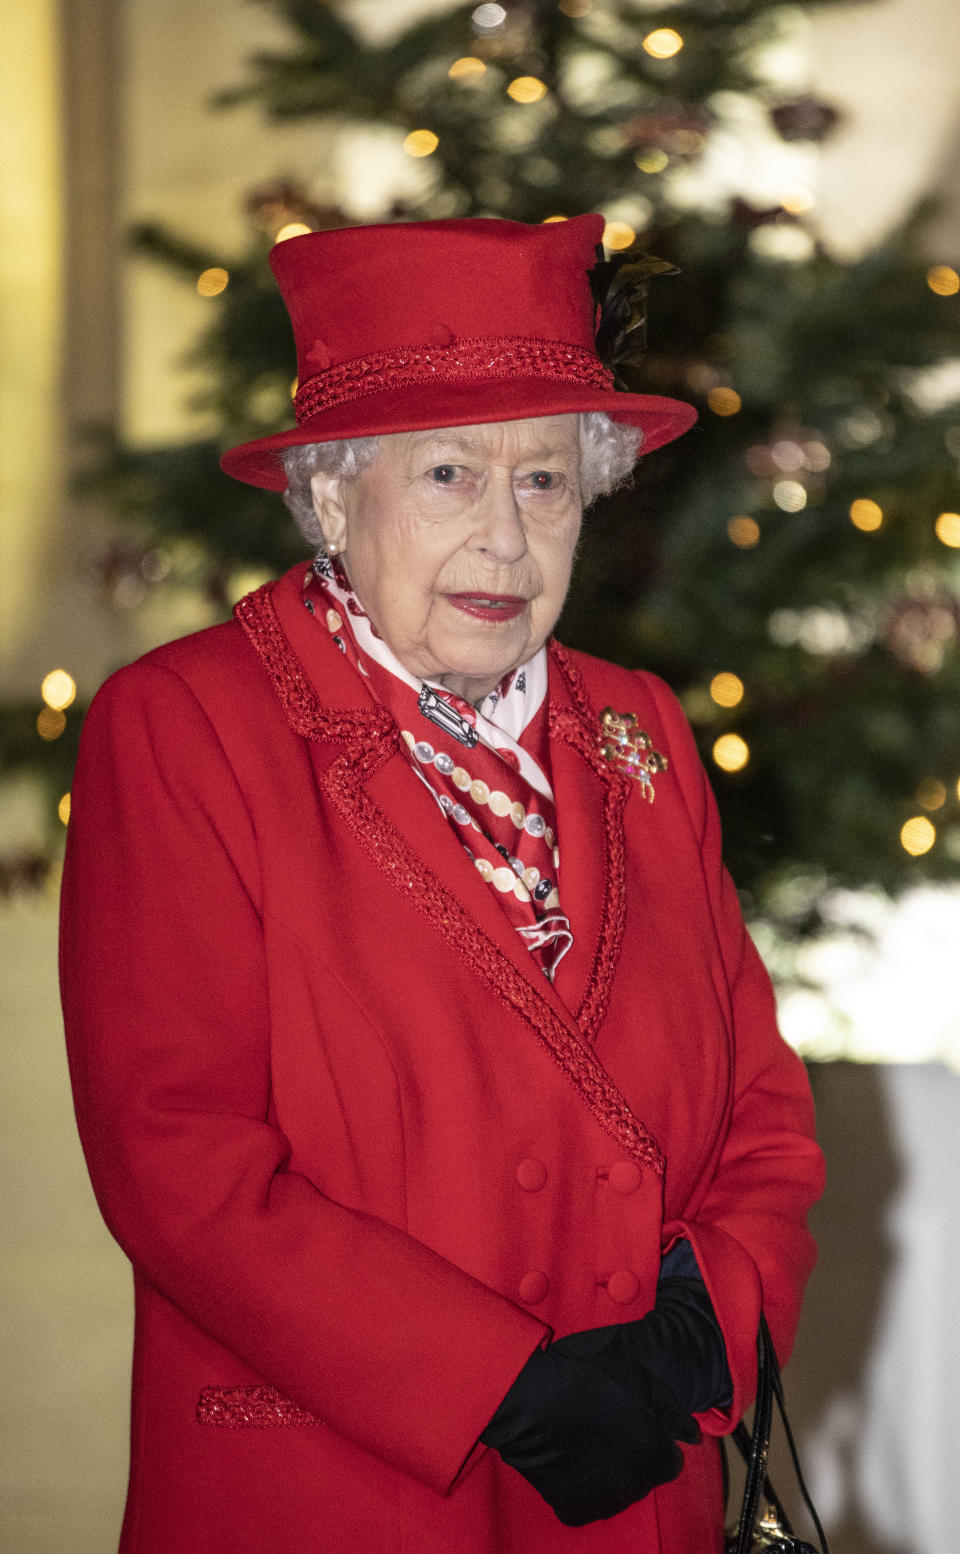 WINDSOR, ENGLAND - DECEMBER 08: Queen Elizabeth II thanks volunteers and key workers at Windsor Castle on December 08, 2020 in Windsor, England. The Queen and members of the royal family gave thanks to local volunteers and key workers for their work in helping others during the coronavirus pandemic and over Christmas at Windsor Castle in what was also the final stop for the Duke and Duchess of Cambridge on their tour of England, Wales and Scotland. (Photo by Richard Pohle - WPA Pool/Getty Images)